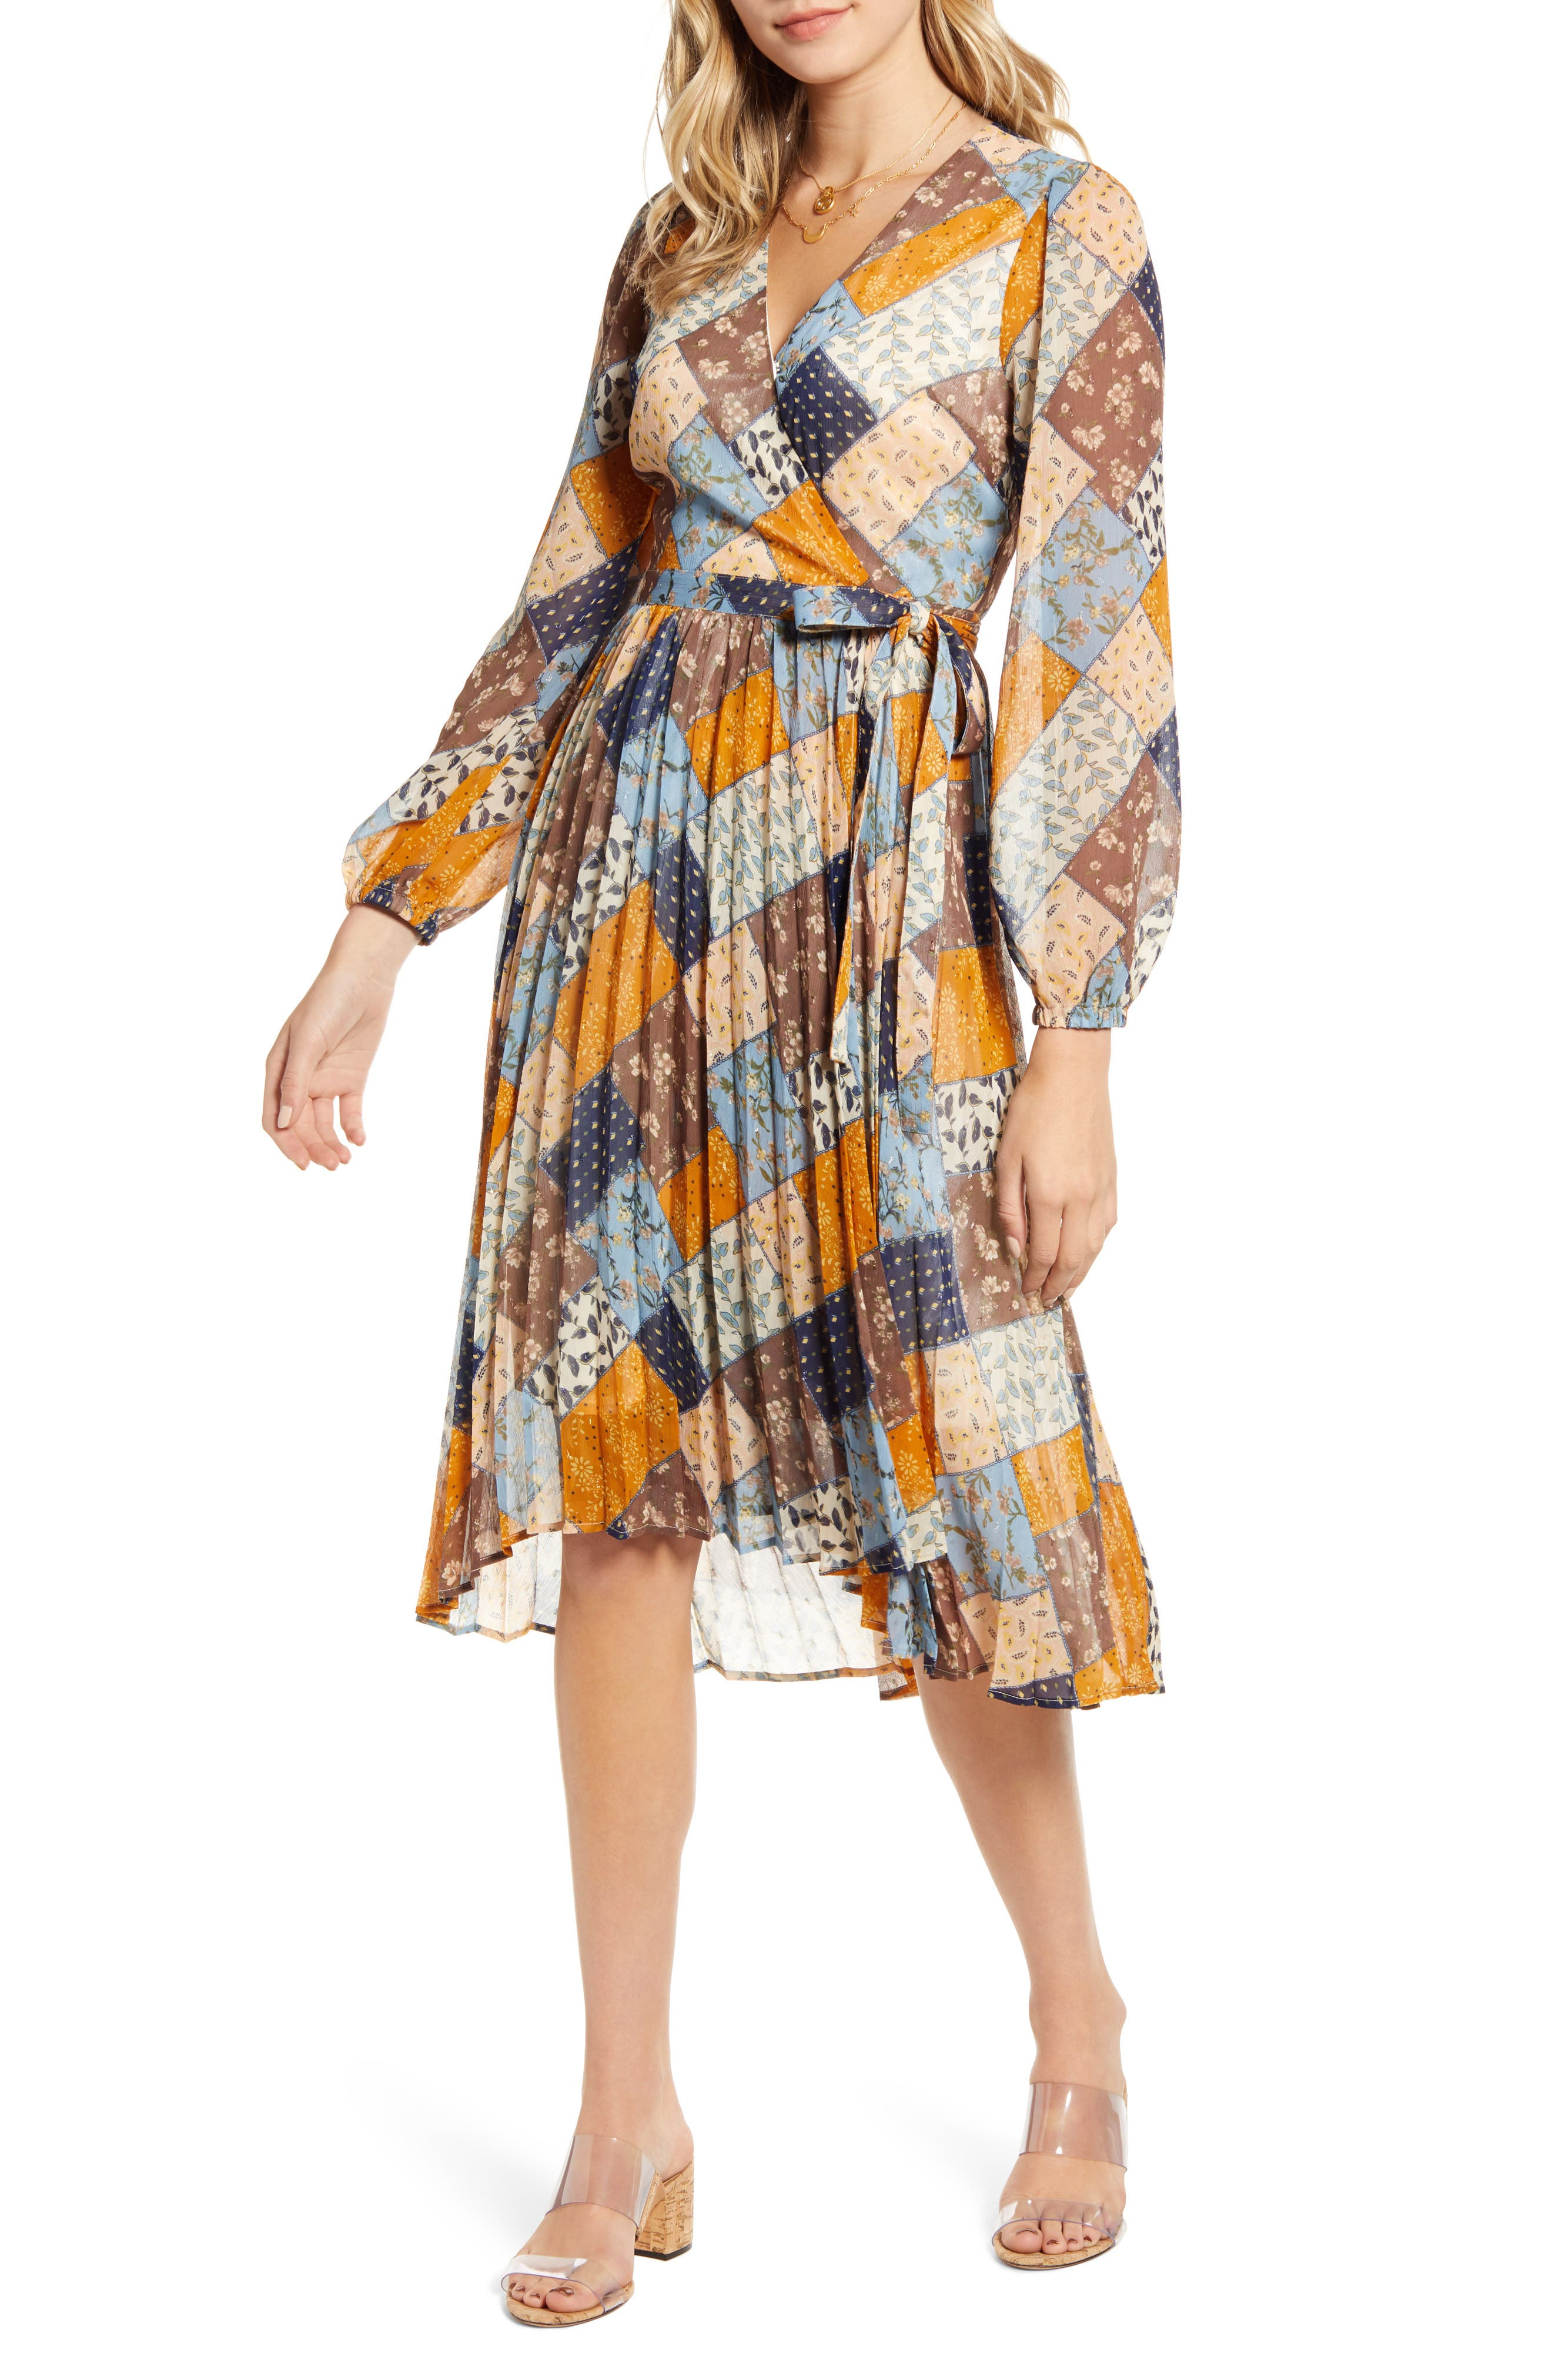 60s Dresses | 1960s Dresses Mod, Mini, Hippie Womens Moon River Patchwork Print Long Sleeve Wrap Dress $139.00 AT vintagedancer.com